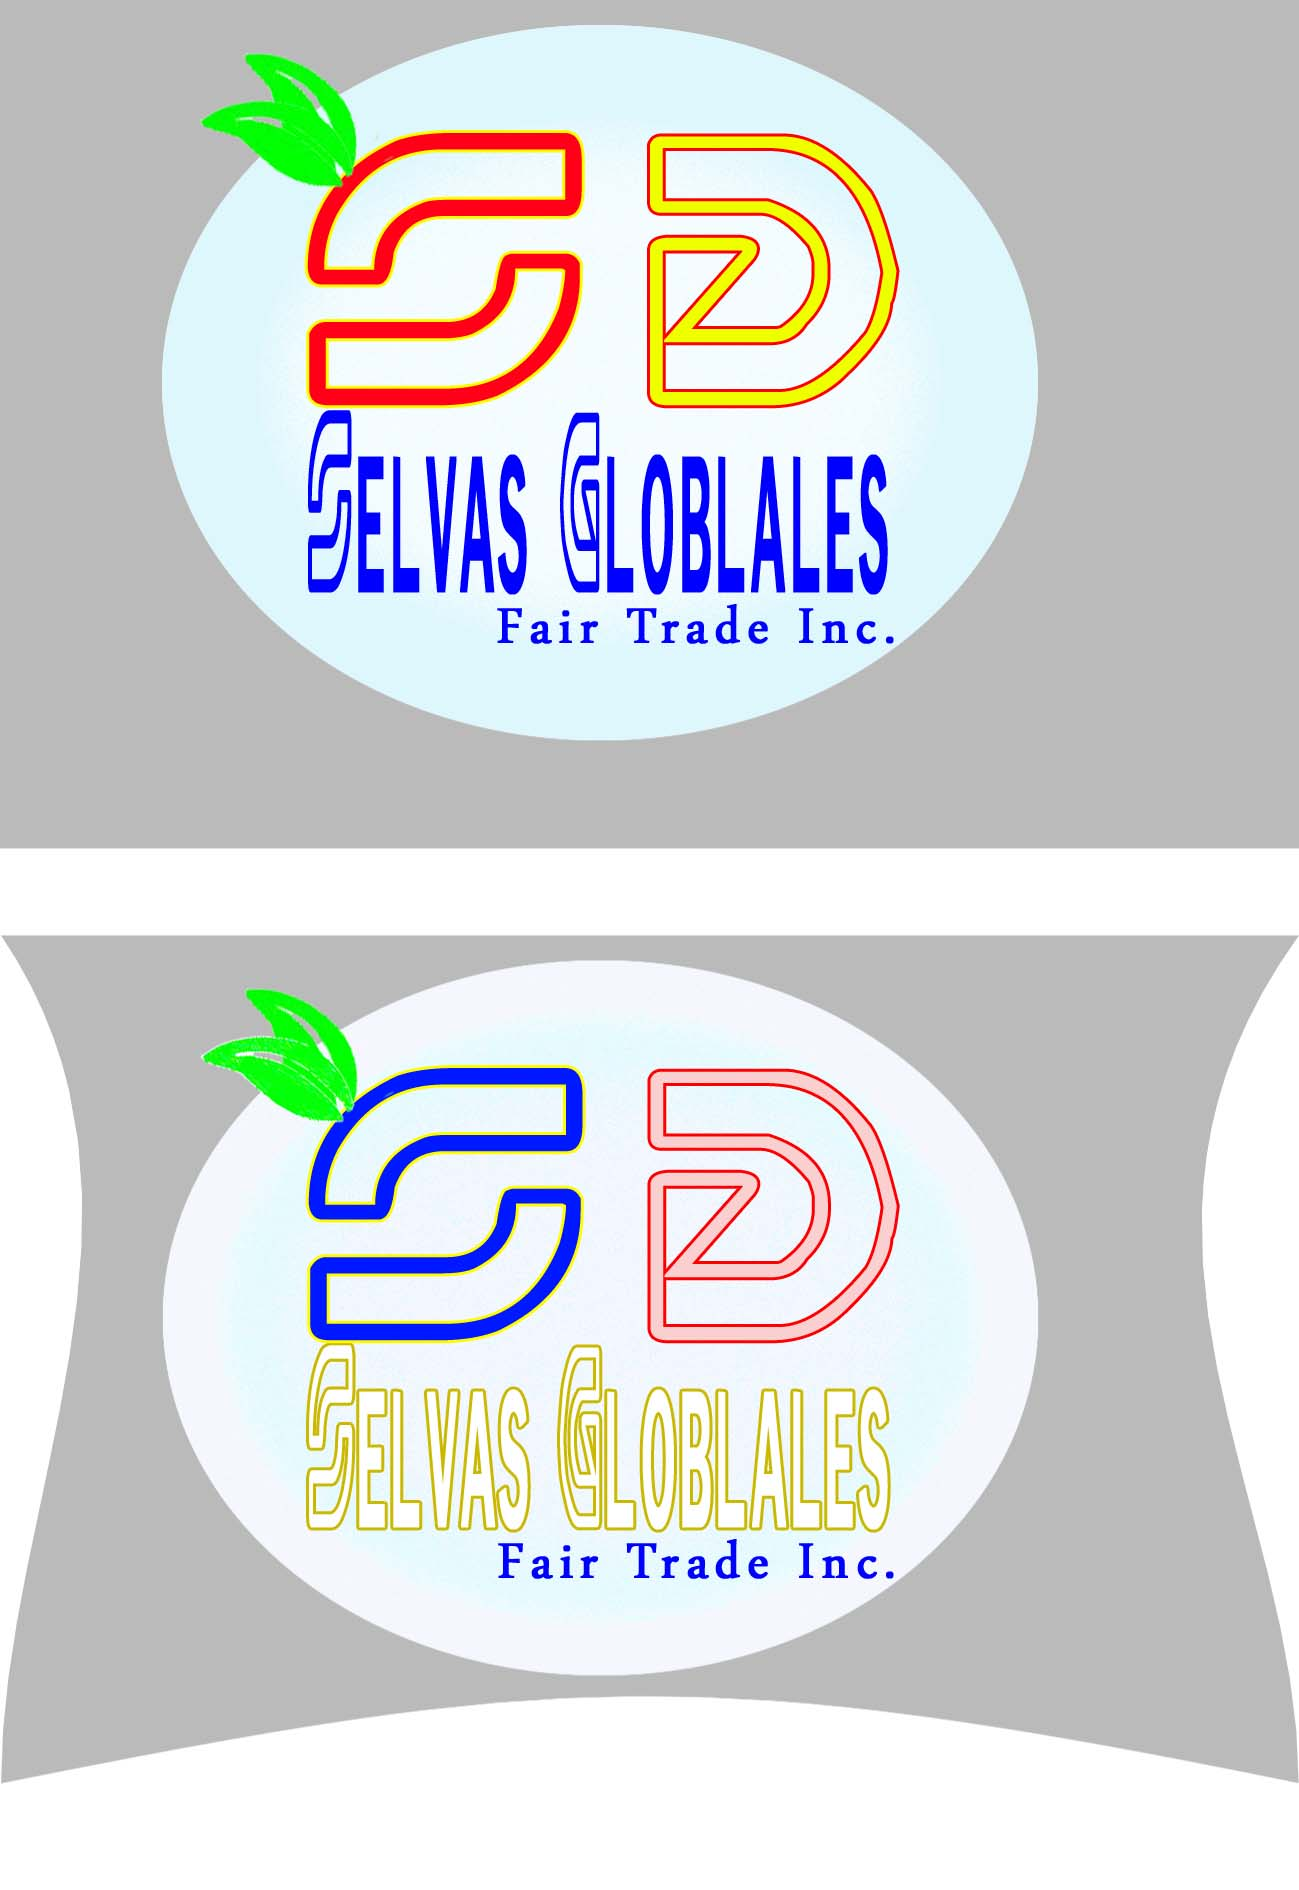 Logo Design by faza-bejo - Entry No. 48 in the Logo Design Contest Captivating Logo Design for Selvas Globales Fair Trade Inc..